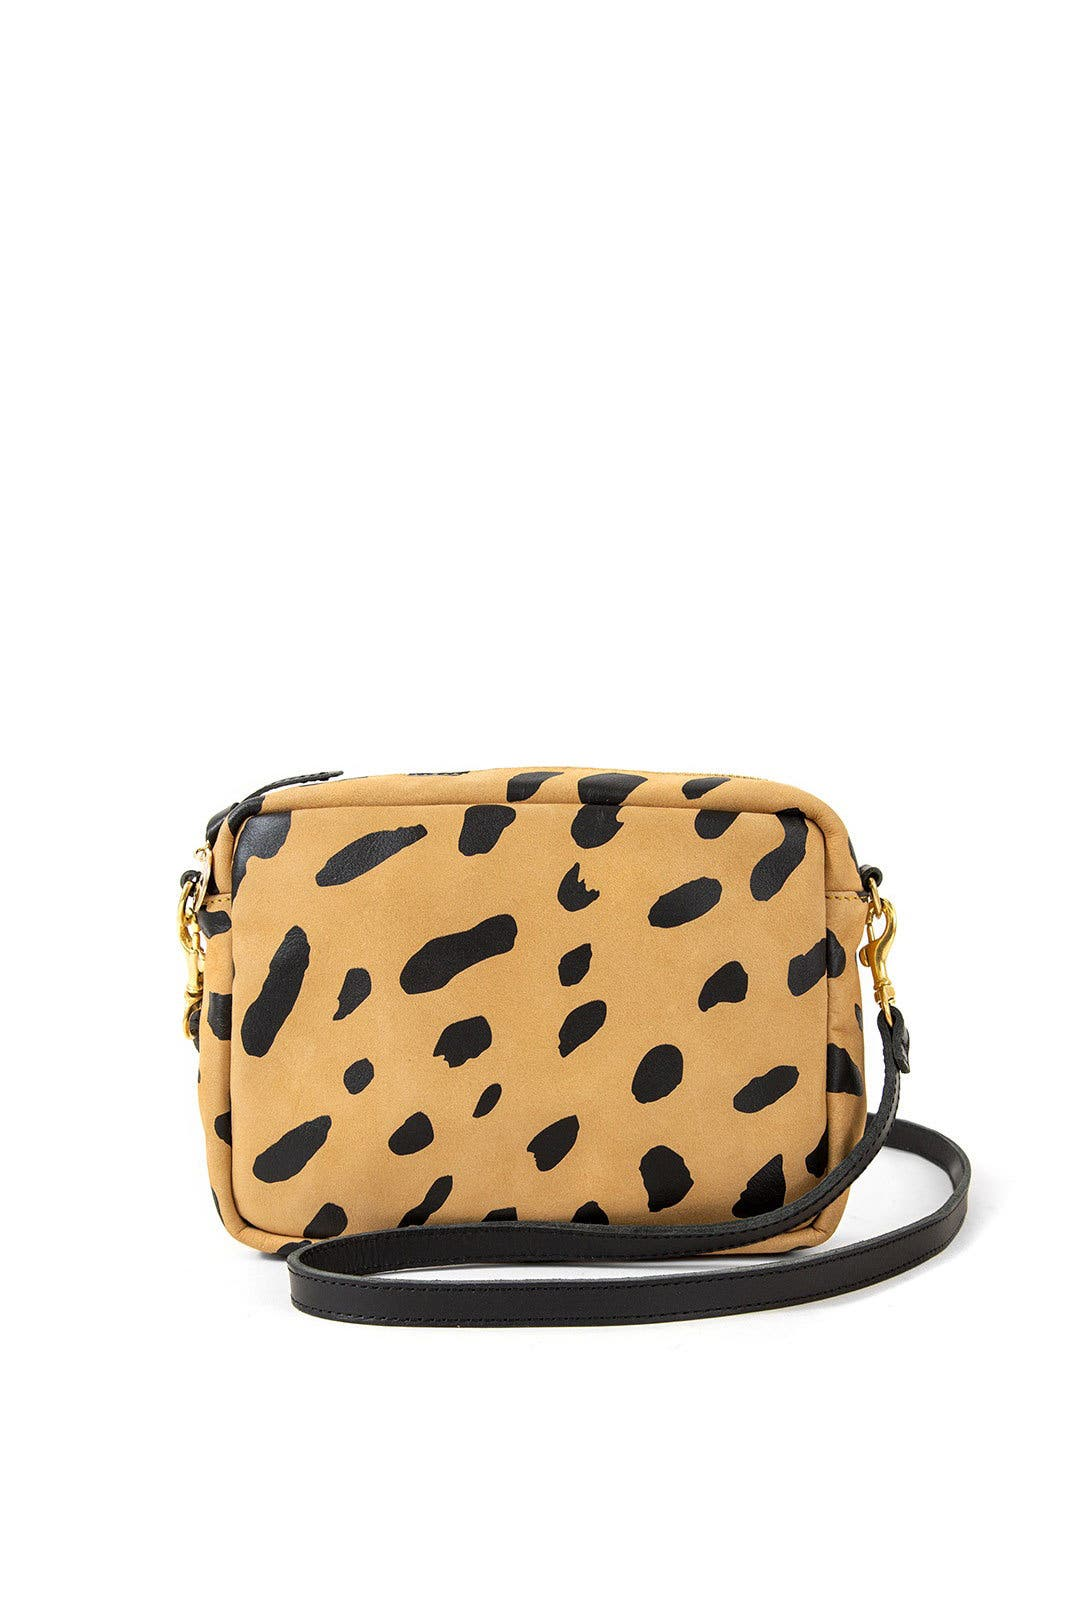 362093486 Jaguar Midi Sac Crossbody by Clare V. for $45 | Rent the Runway